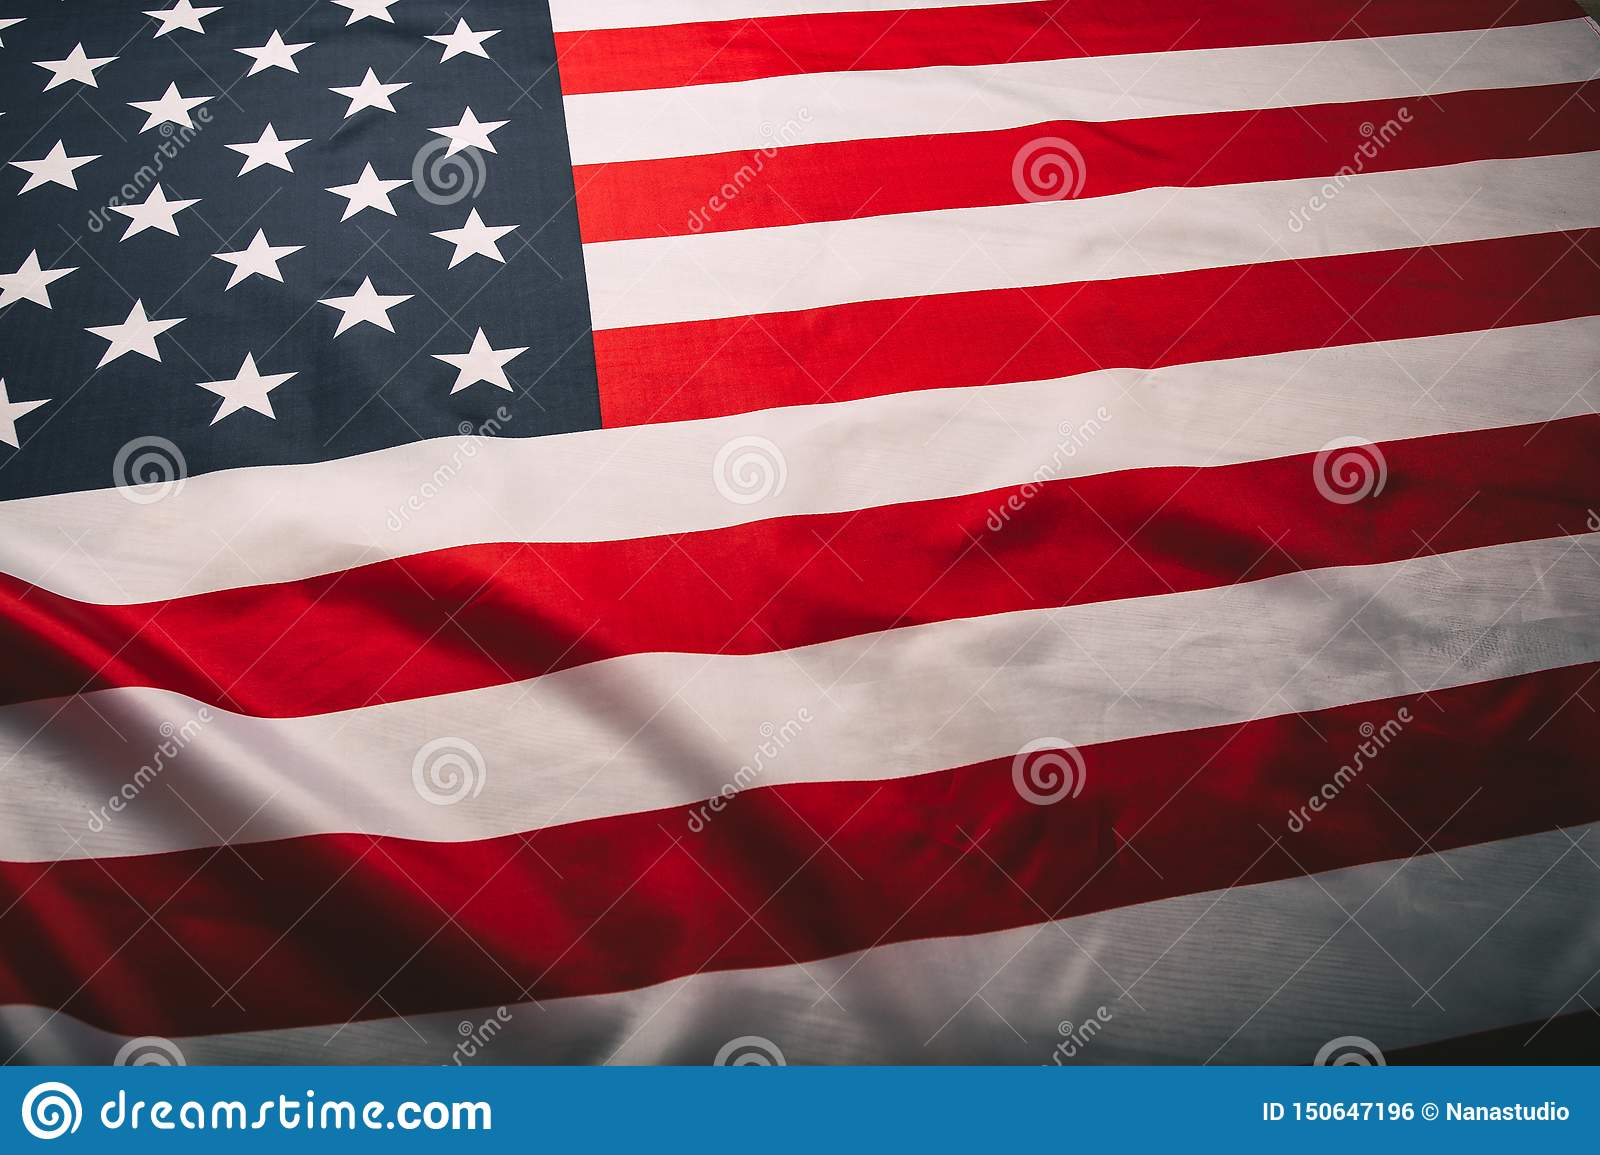 United States of America flag. Image of the american flag flying in the wind